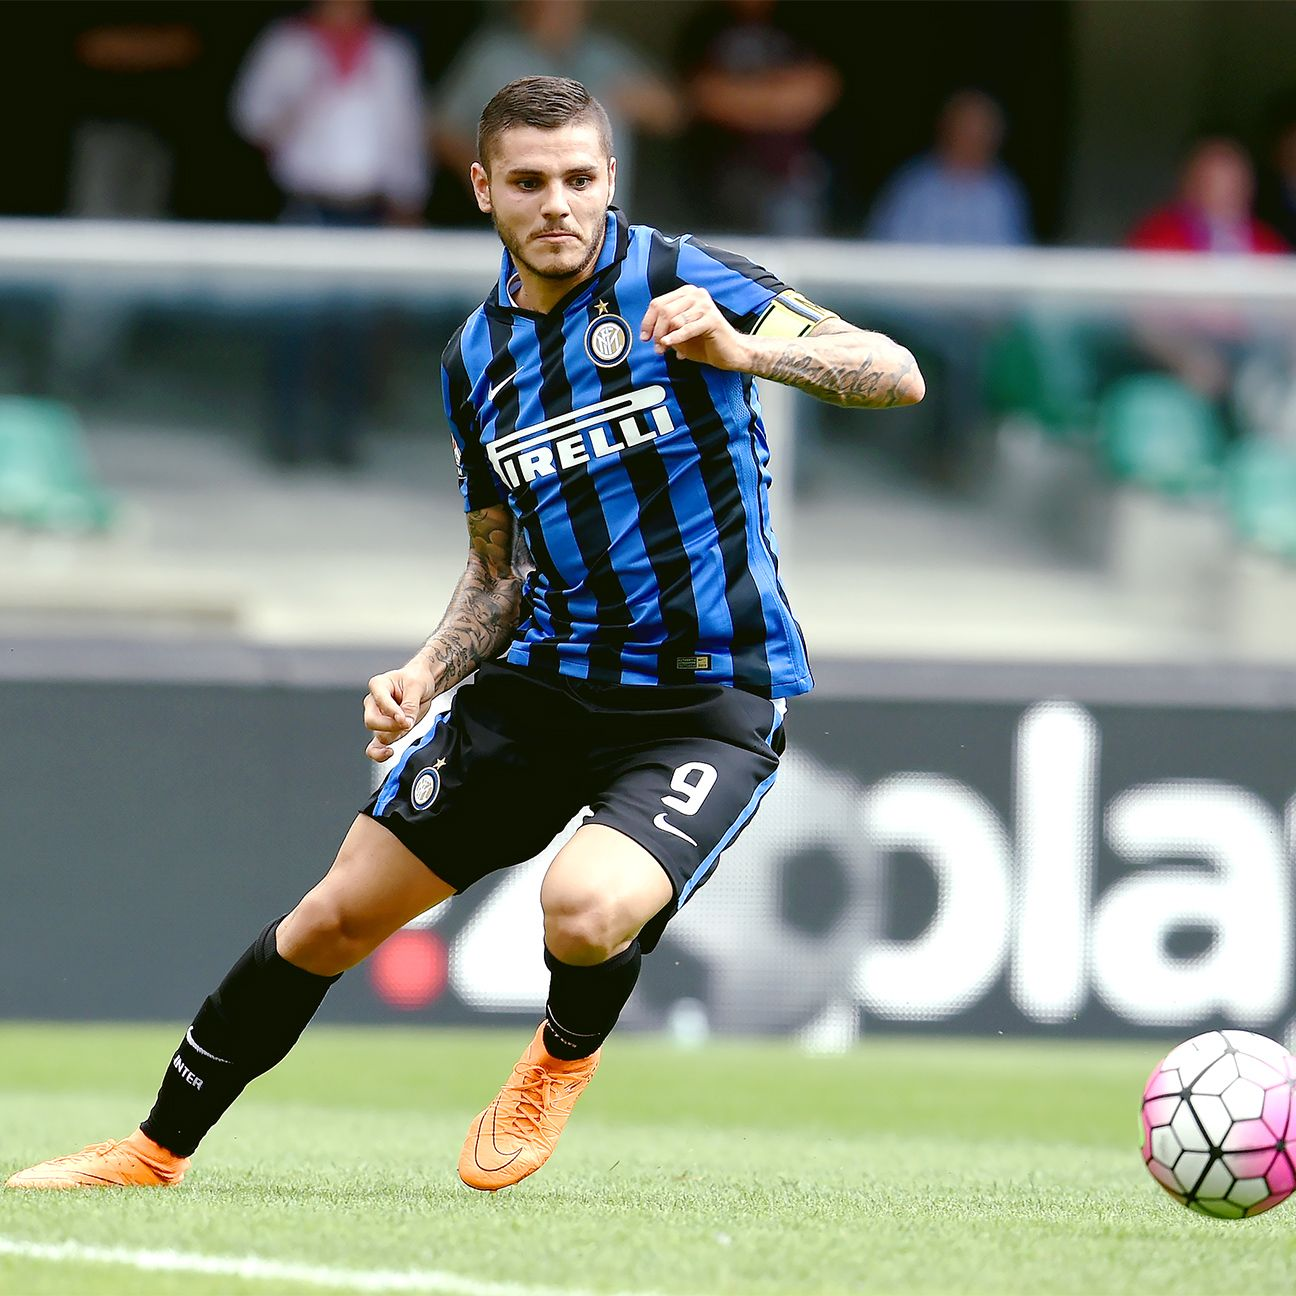 Inter Milan will need Mauro Icardi to be at his best when they face Juventus on Sunday.